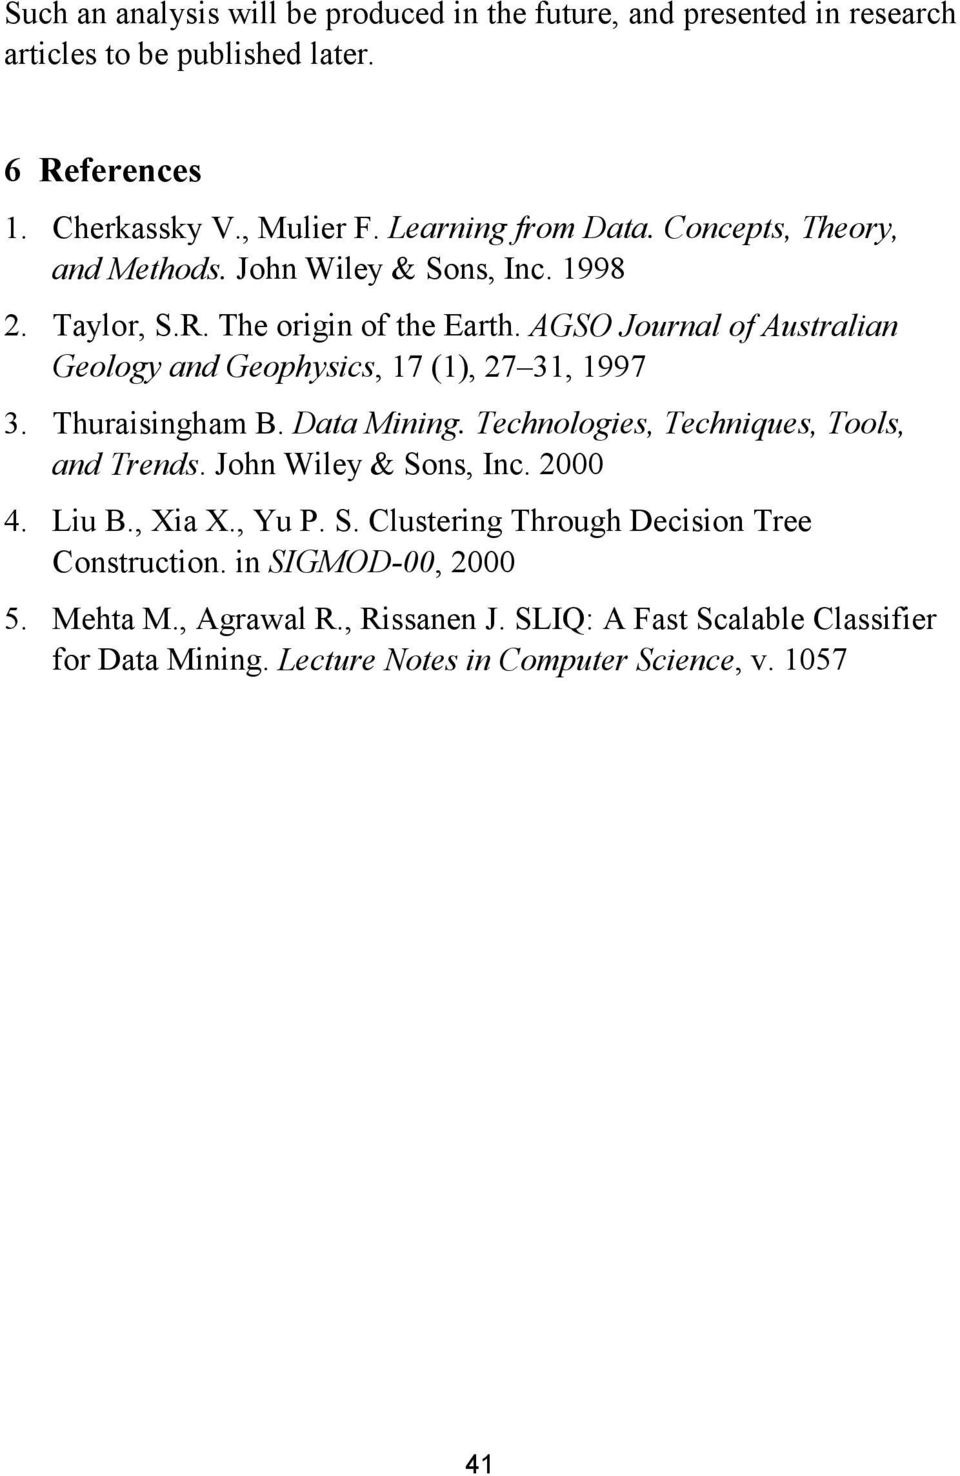 AGSO Journal of Australian Geology and Geophysics, 17 (1), 27 31, 1997 3. Thuraisingham B. Data Mining. Technologies, Techniques, Tools, and Trends.